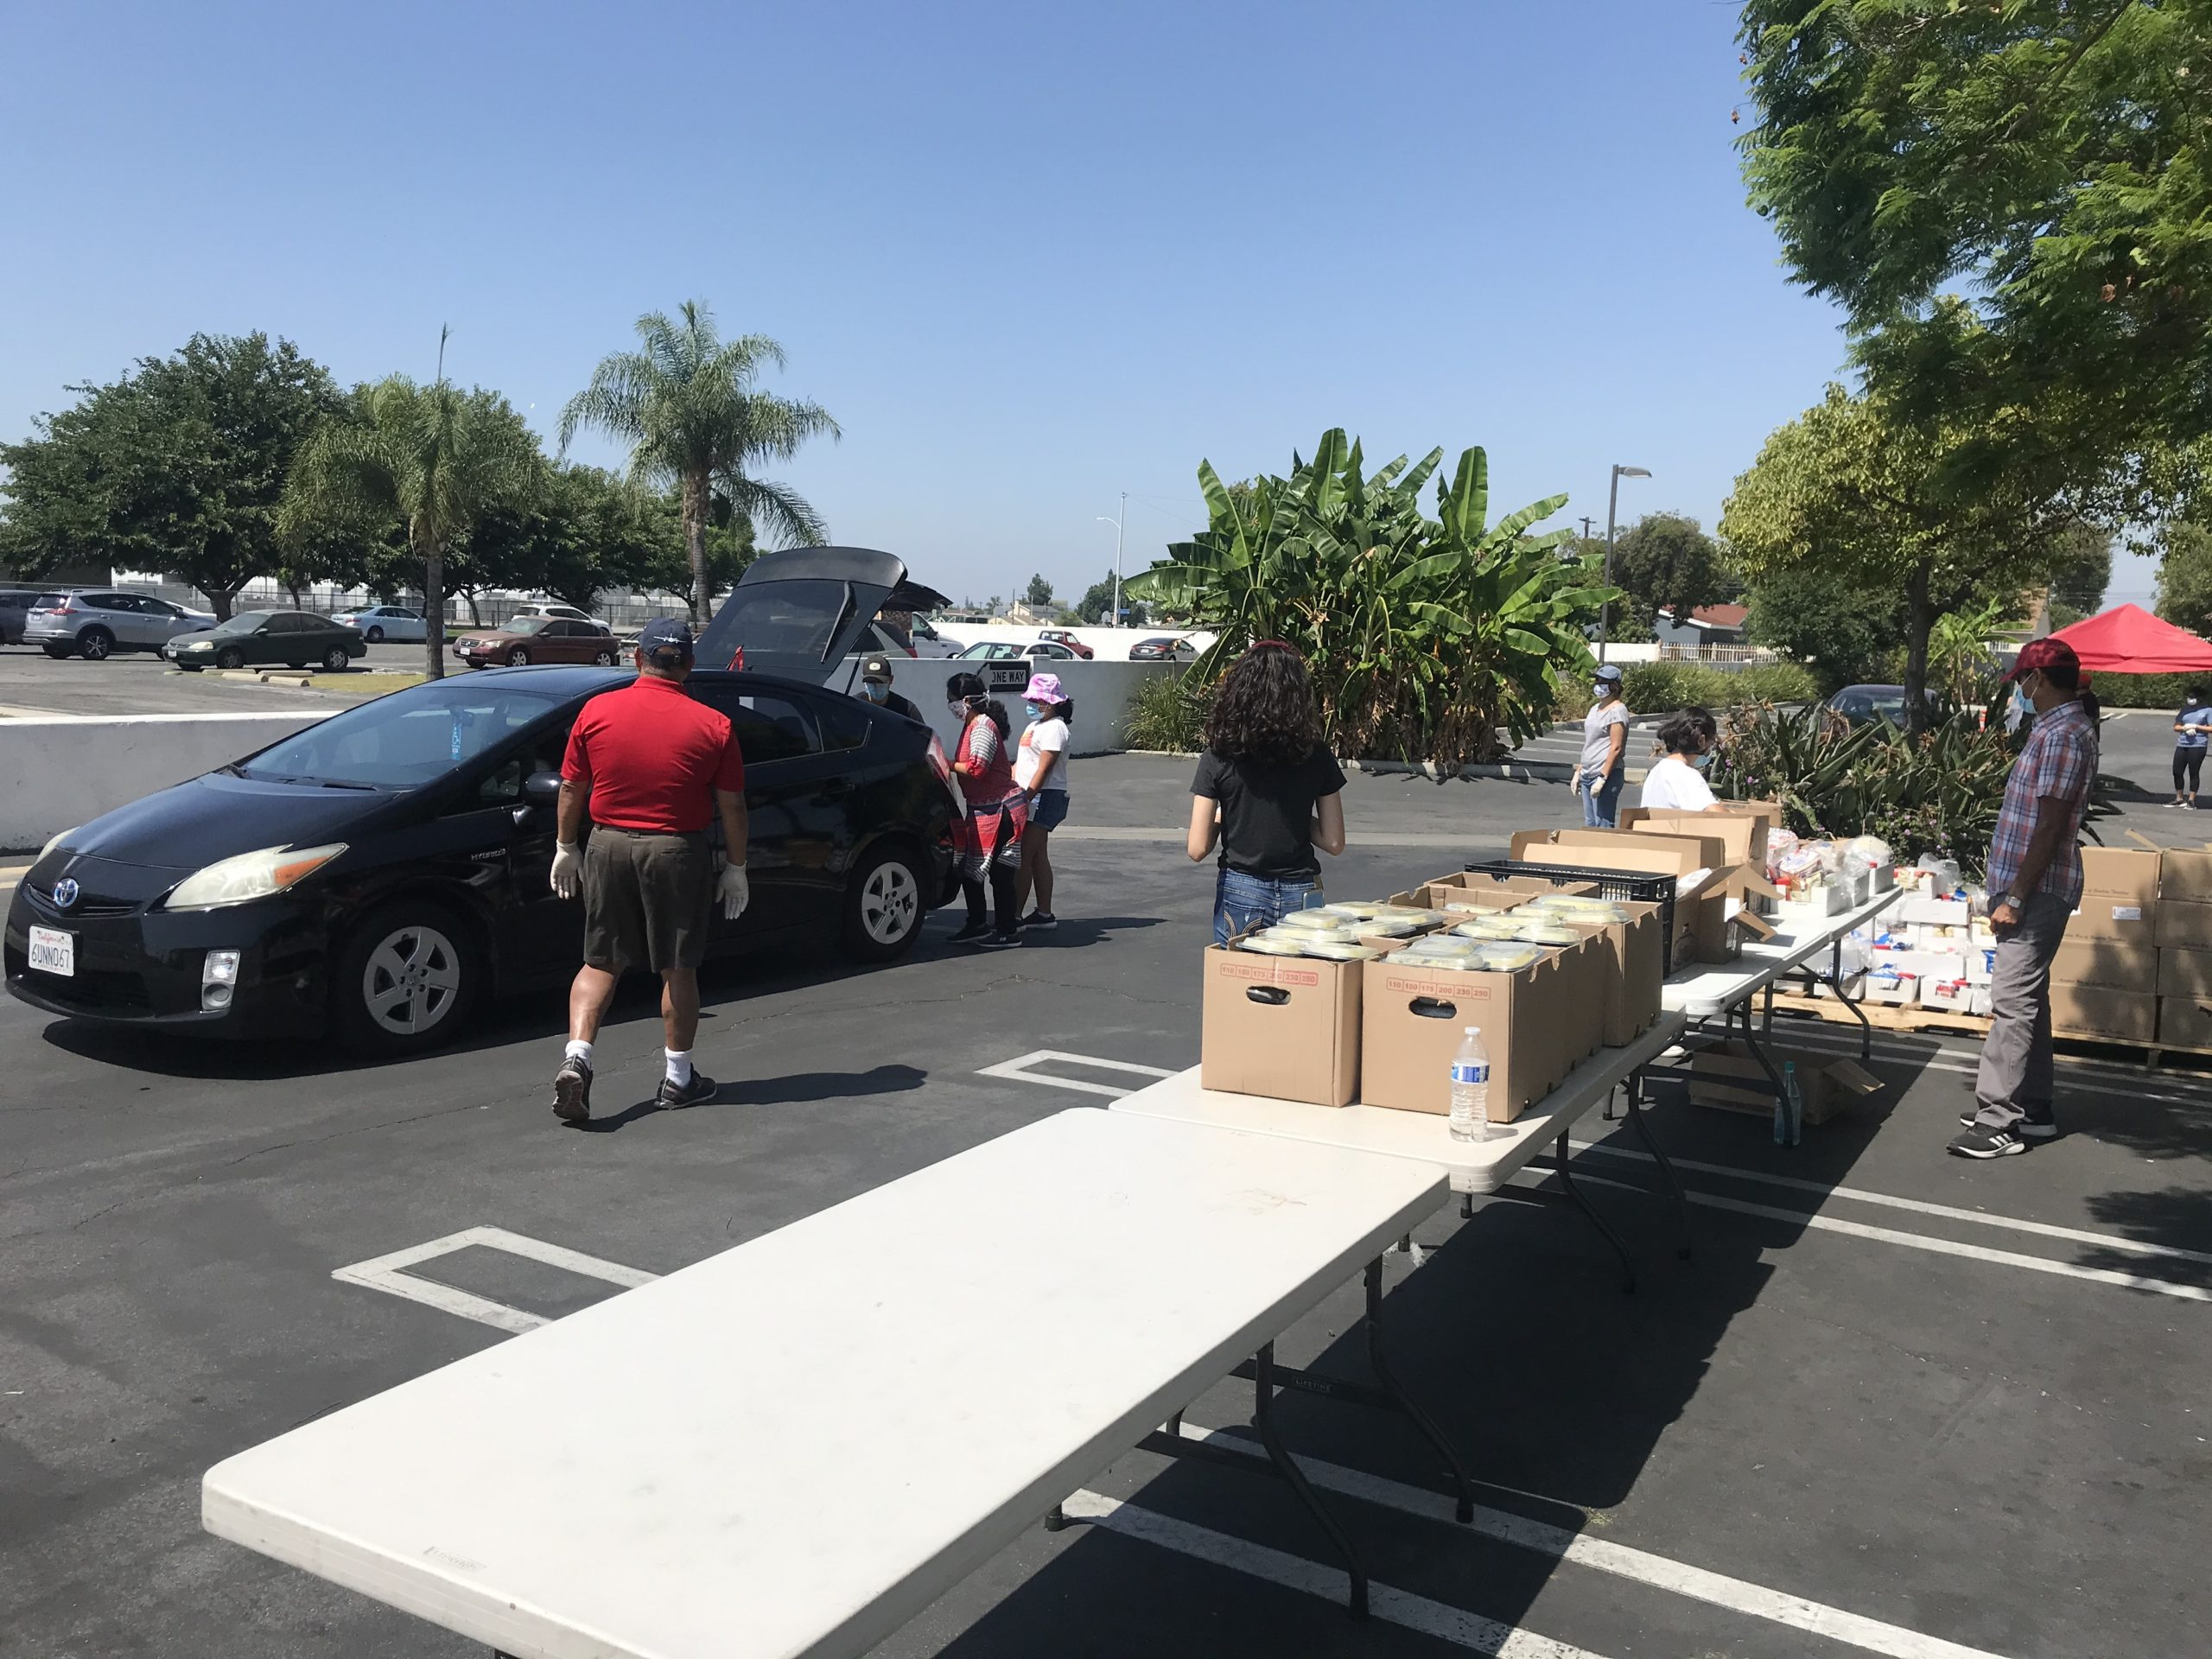 These bags have served families in over 35 different cities surrounding the LA and Orange Counties. Taking full precaution, our volunteers load the trunks, while a separate loading station served the walk-ins.